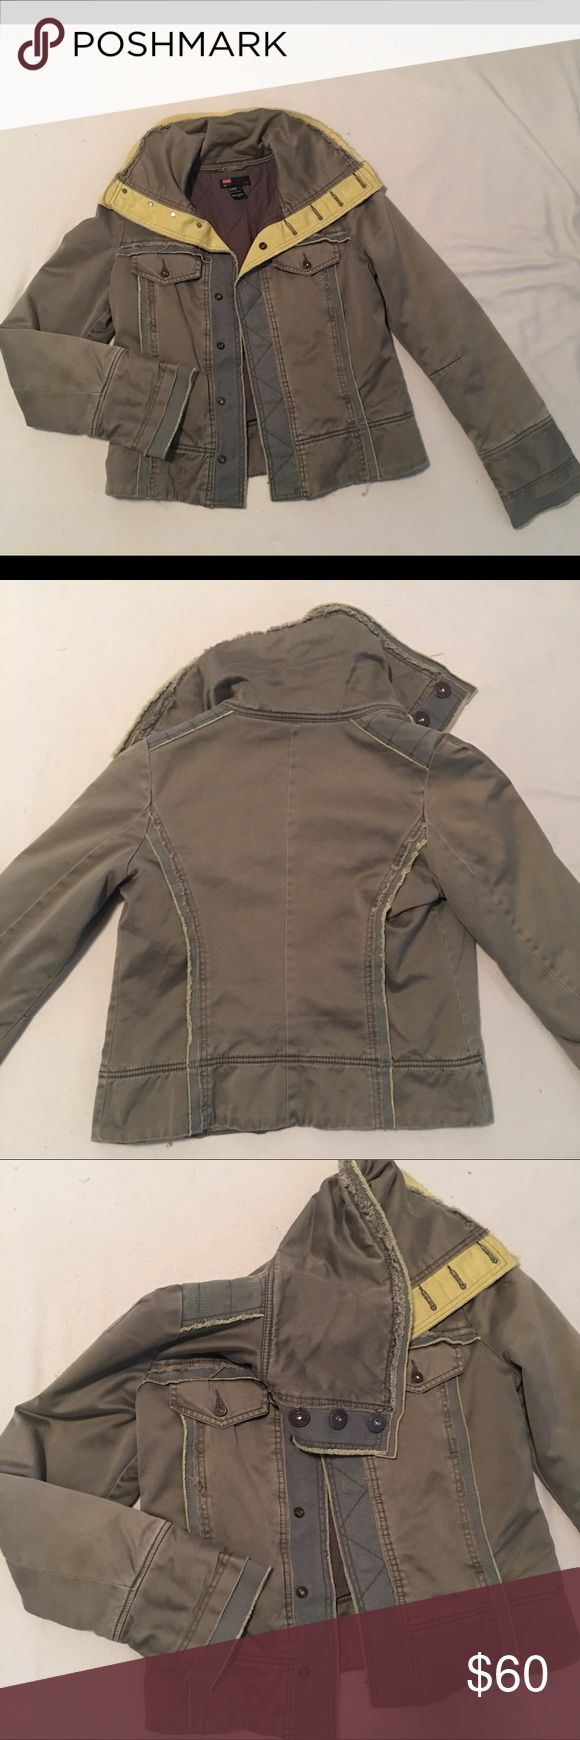 Authentic Diesel Jacket NWOT Beautiful Olive green Diesel jacket. Lined interior for extra warmth. Naturally distressed. Perfect condition, never warn. 💞 This is a size large- however is likely a juniors size large, fitting more true to a medium. Diesel Jackets & Coats